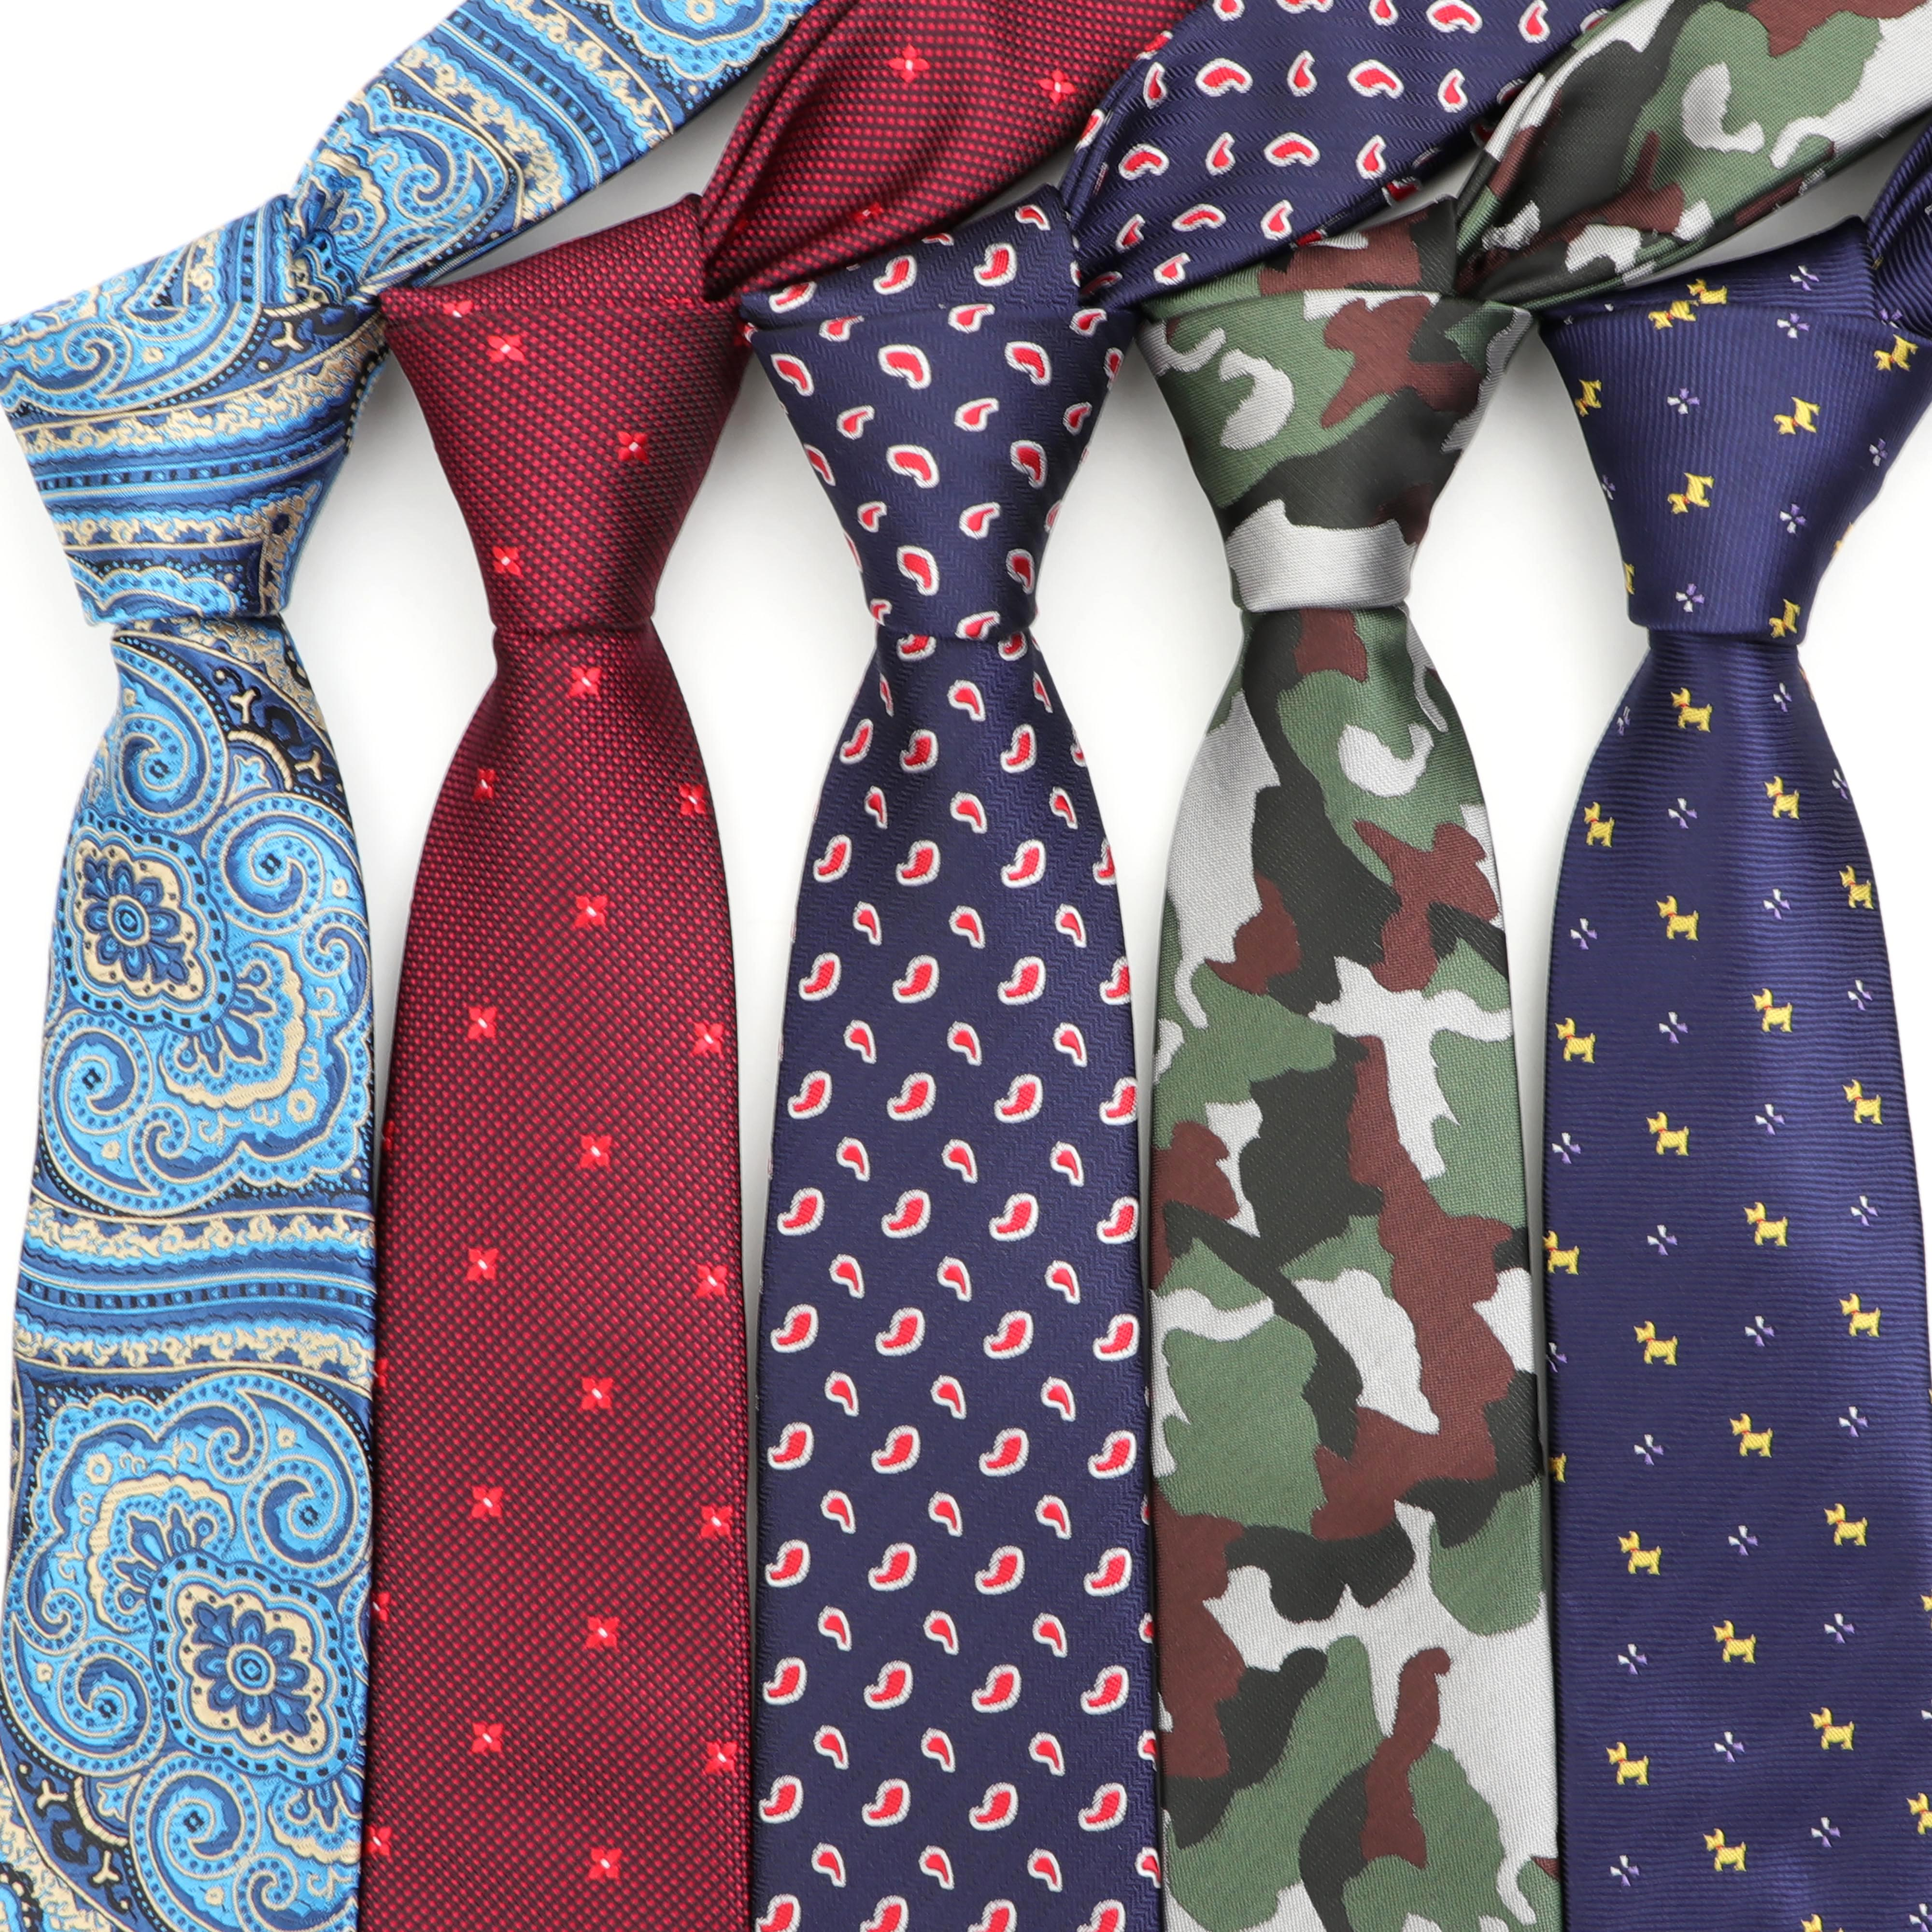 New Jacquard Woven Neck Tie For Men Wedding Business Classic Ties Fashion Polyester Slim Mens Necktie Camouflage